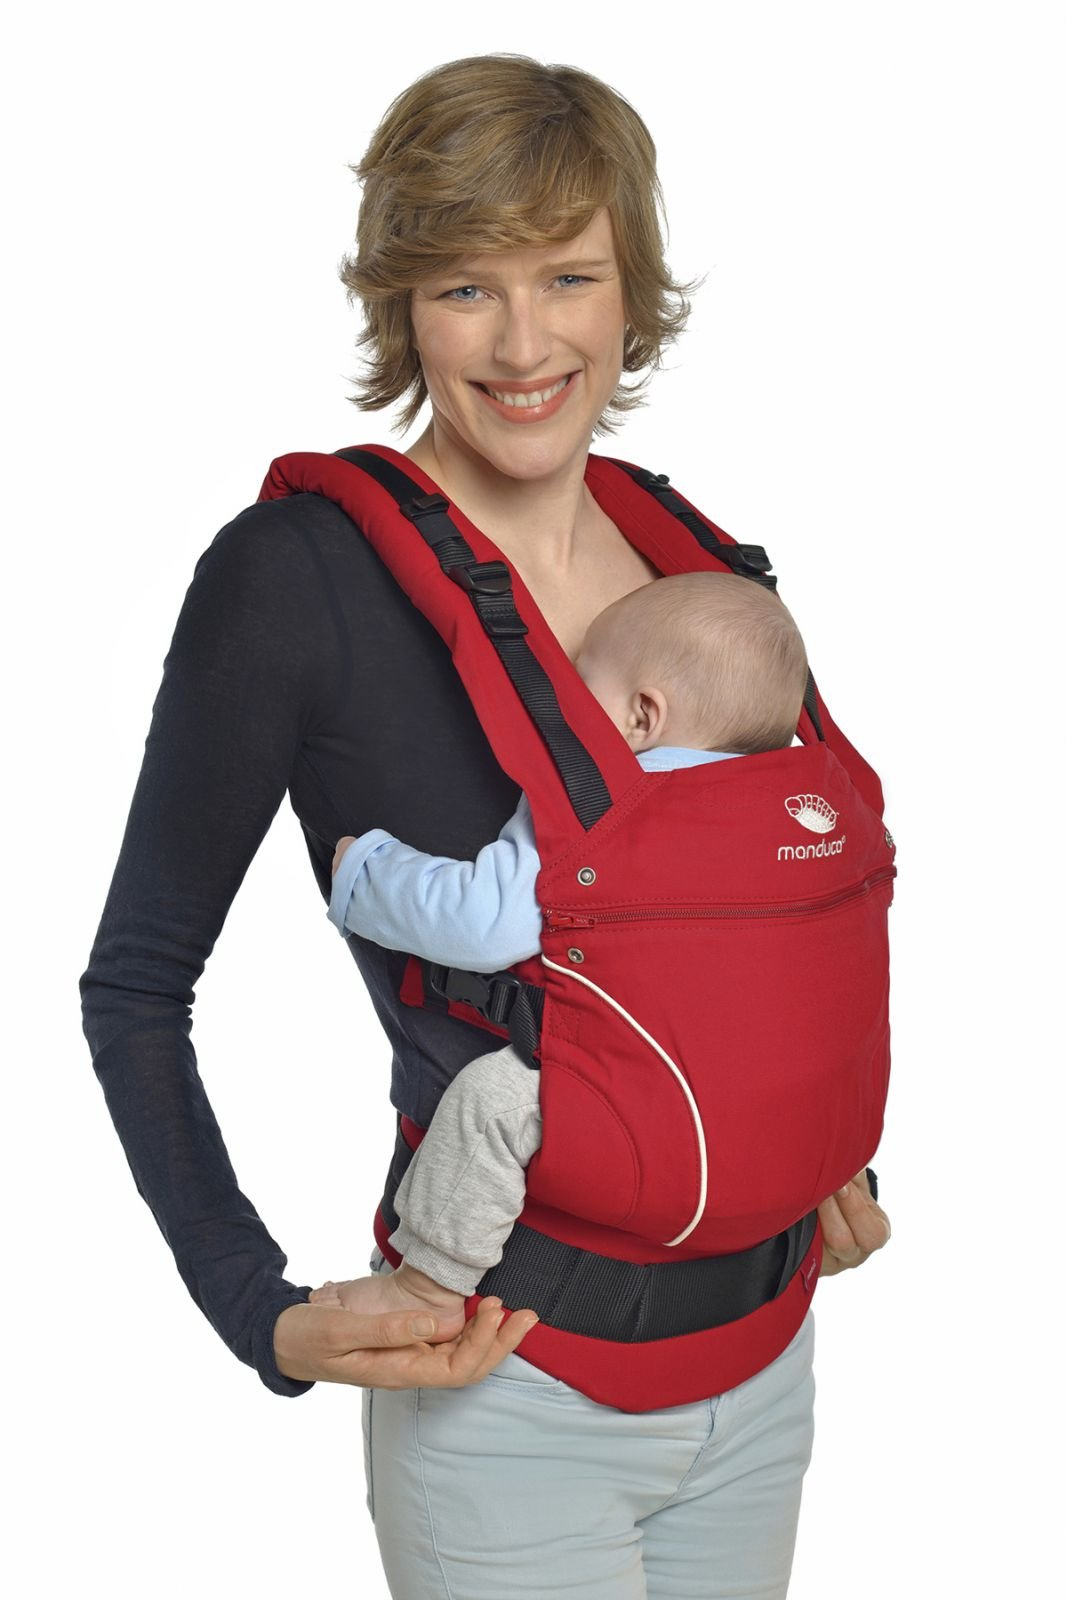 Manduca 3-in-1 Pure Cotton Baby Carrier (Chili Red) Manduca 3-in-1 soft structured baby carrier that supports baby in the healthiest position Made from 100% organic cotton Suitable from newborn to pre-schooler taking a weight of 45lbs. 4